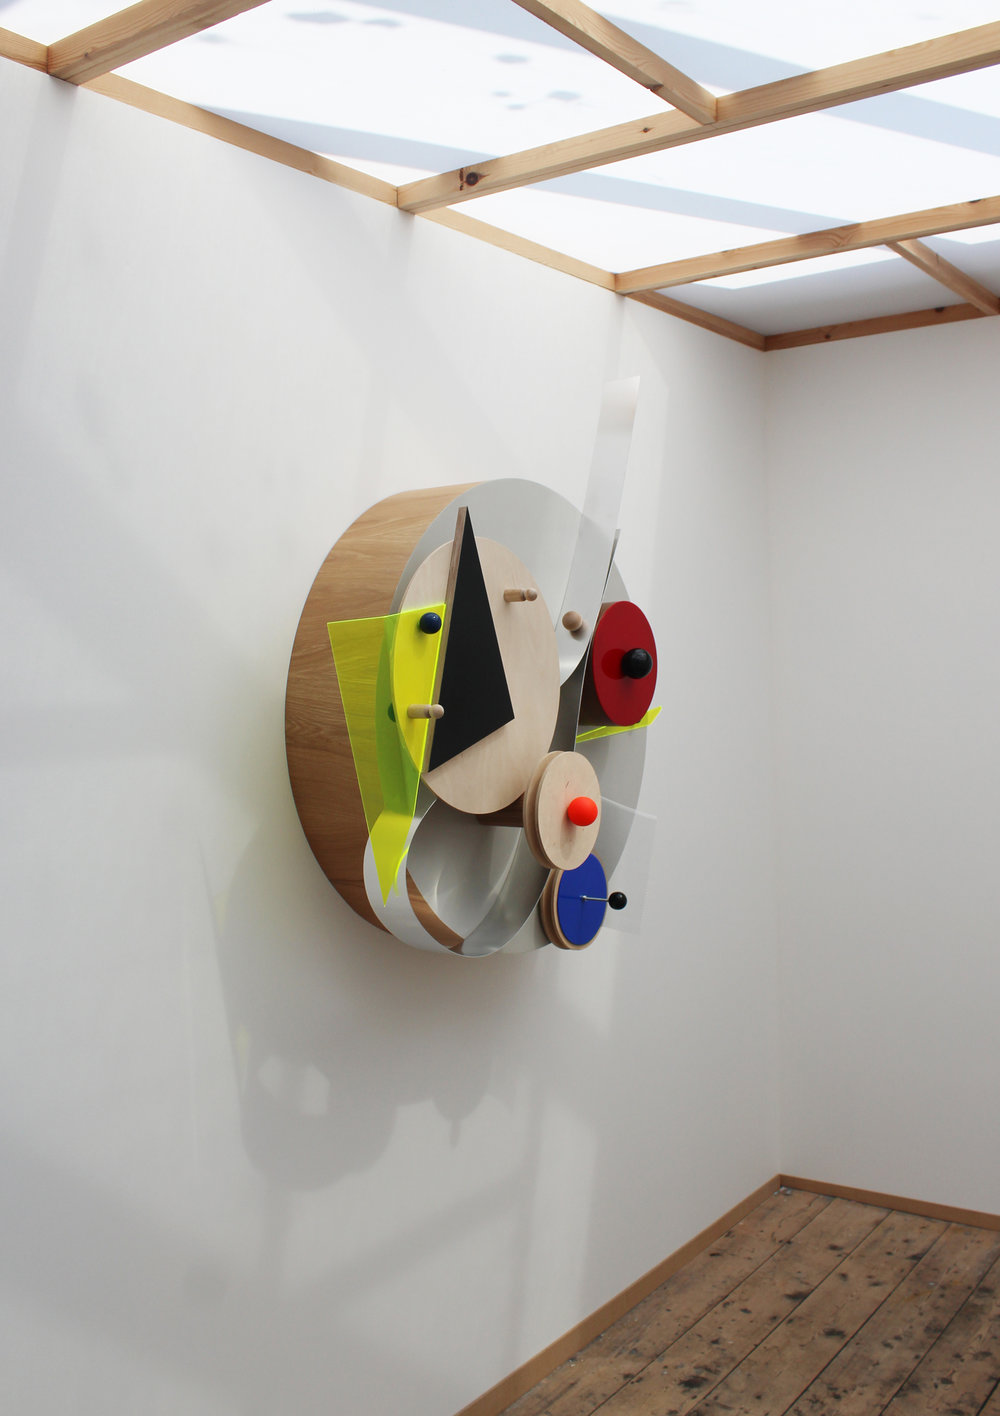 Mark Selby 'Auto-assemblage #14' at Three Works Weymouth June 2016